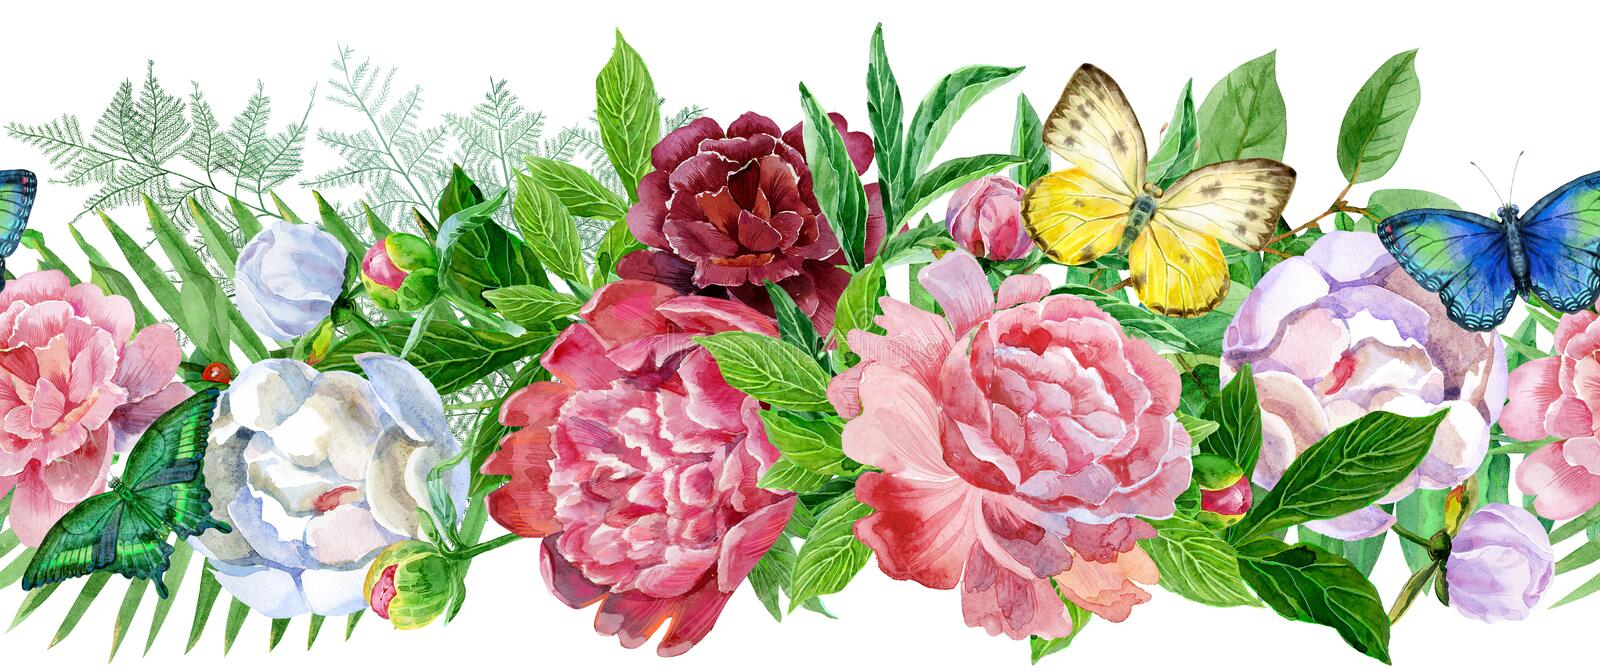 Garden peony, seamless border. Watercolor, hand painted, isolated on white background stock illustration